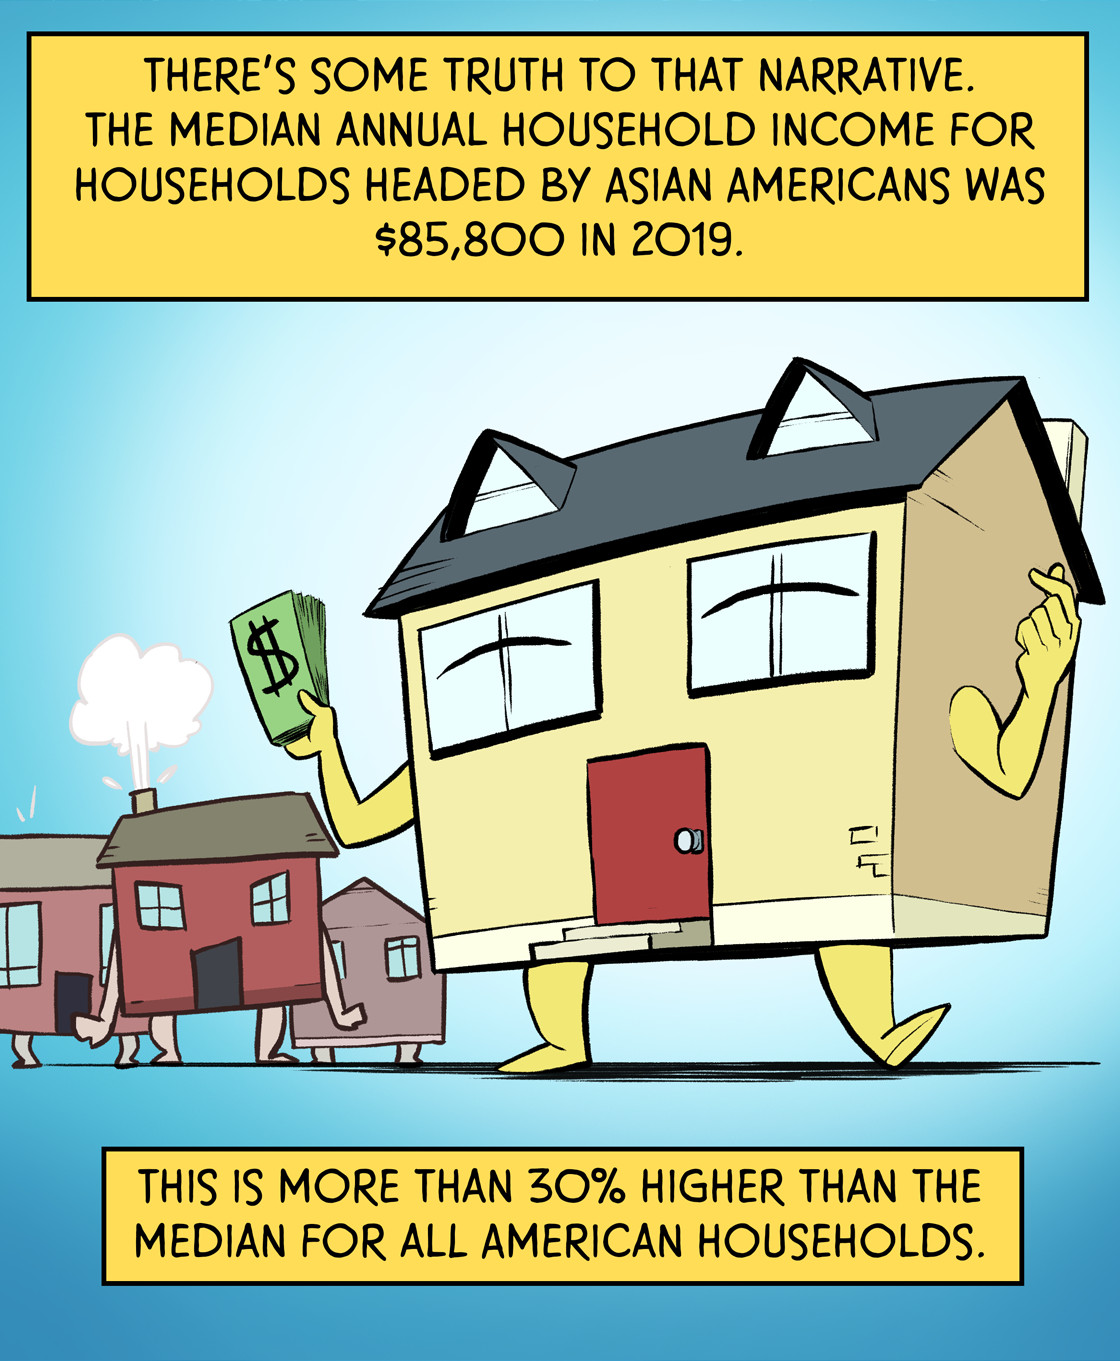 There's some truth to that narrative. The median annual household income for Asian Americans was $85,800 in 2019. This is more than 30% higher than the median for all American households, making it the highest earning group in the nation.